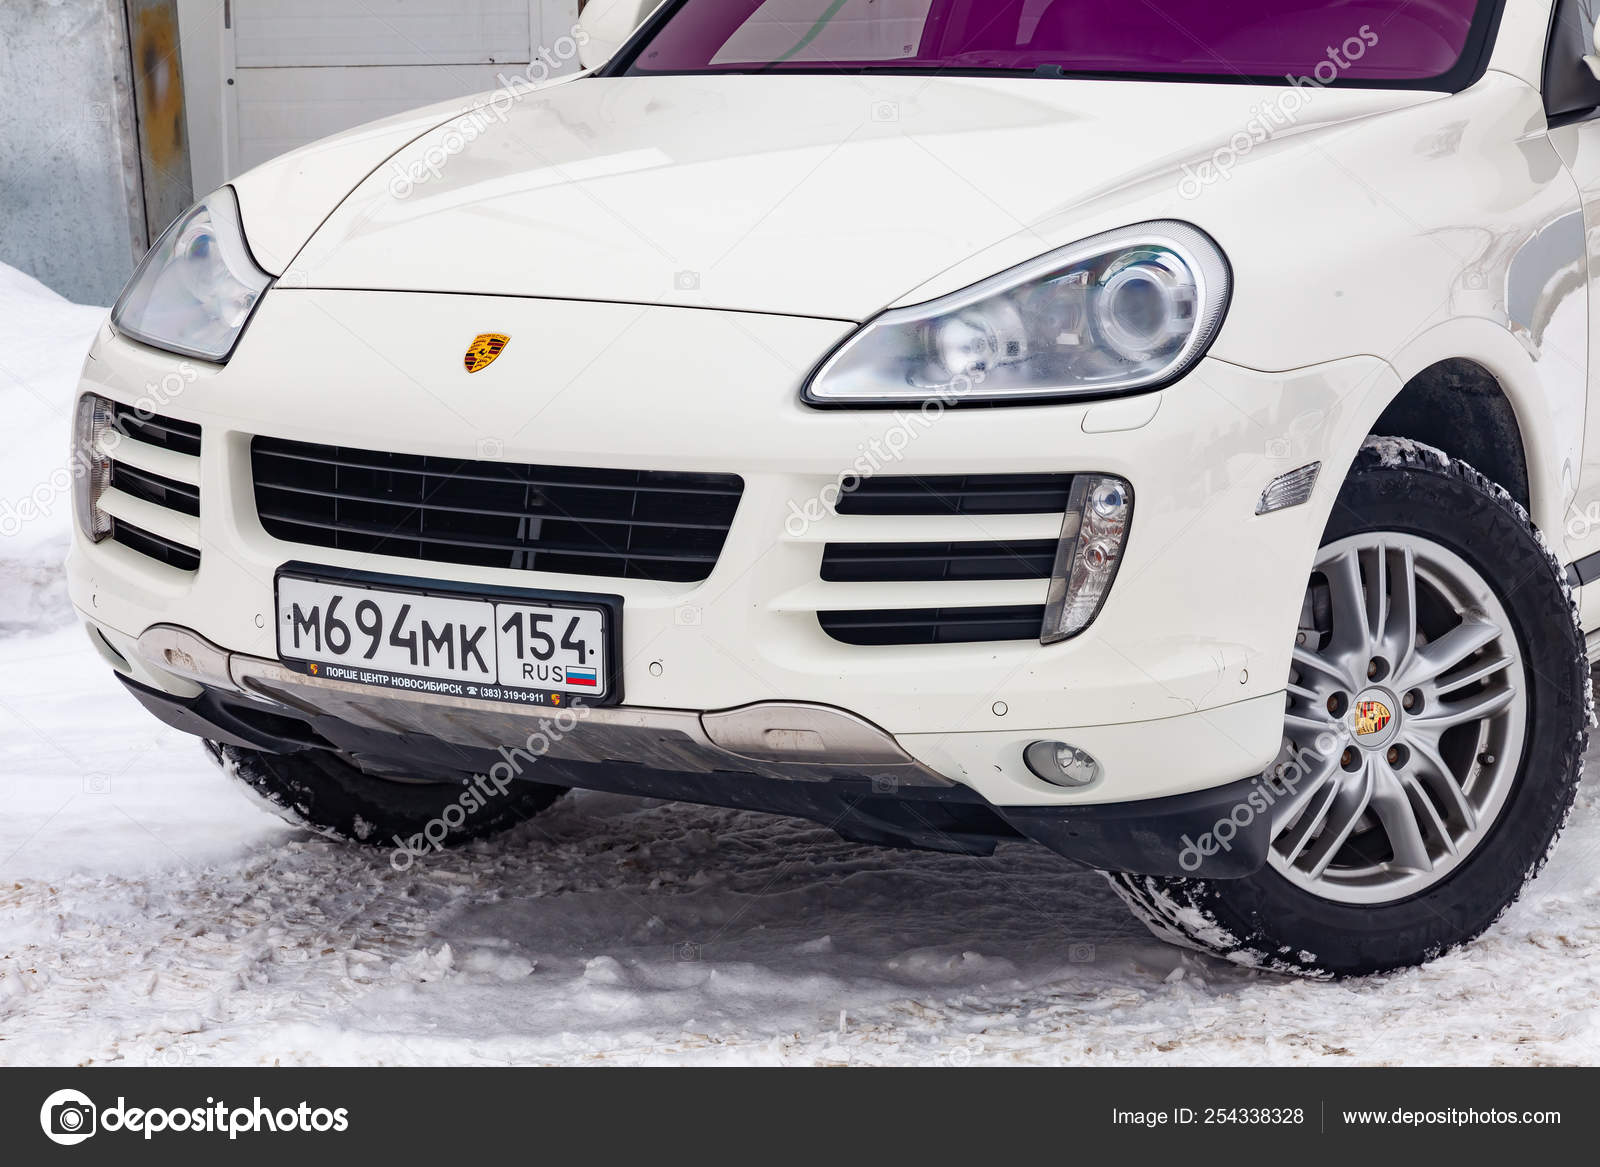 Front view of Porsche Cayenne 957 2007 in white color after